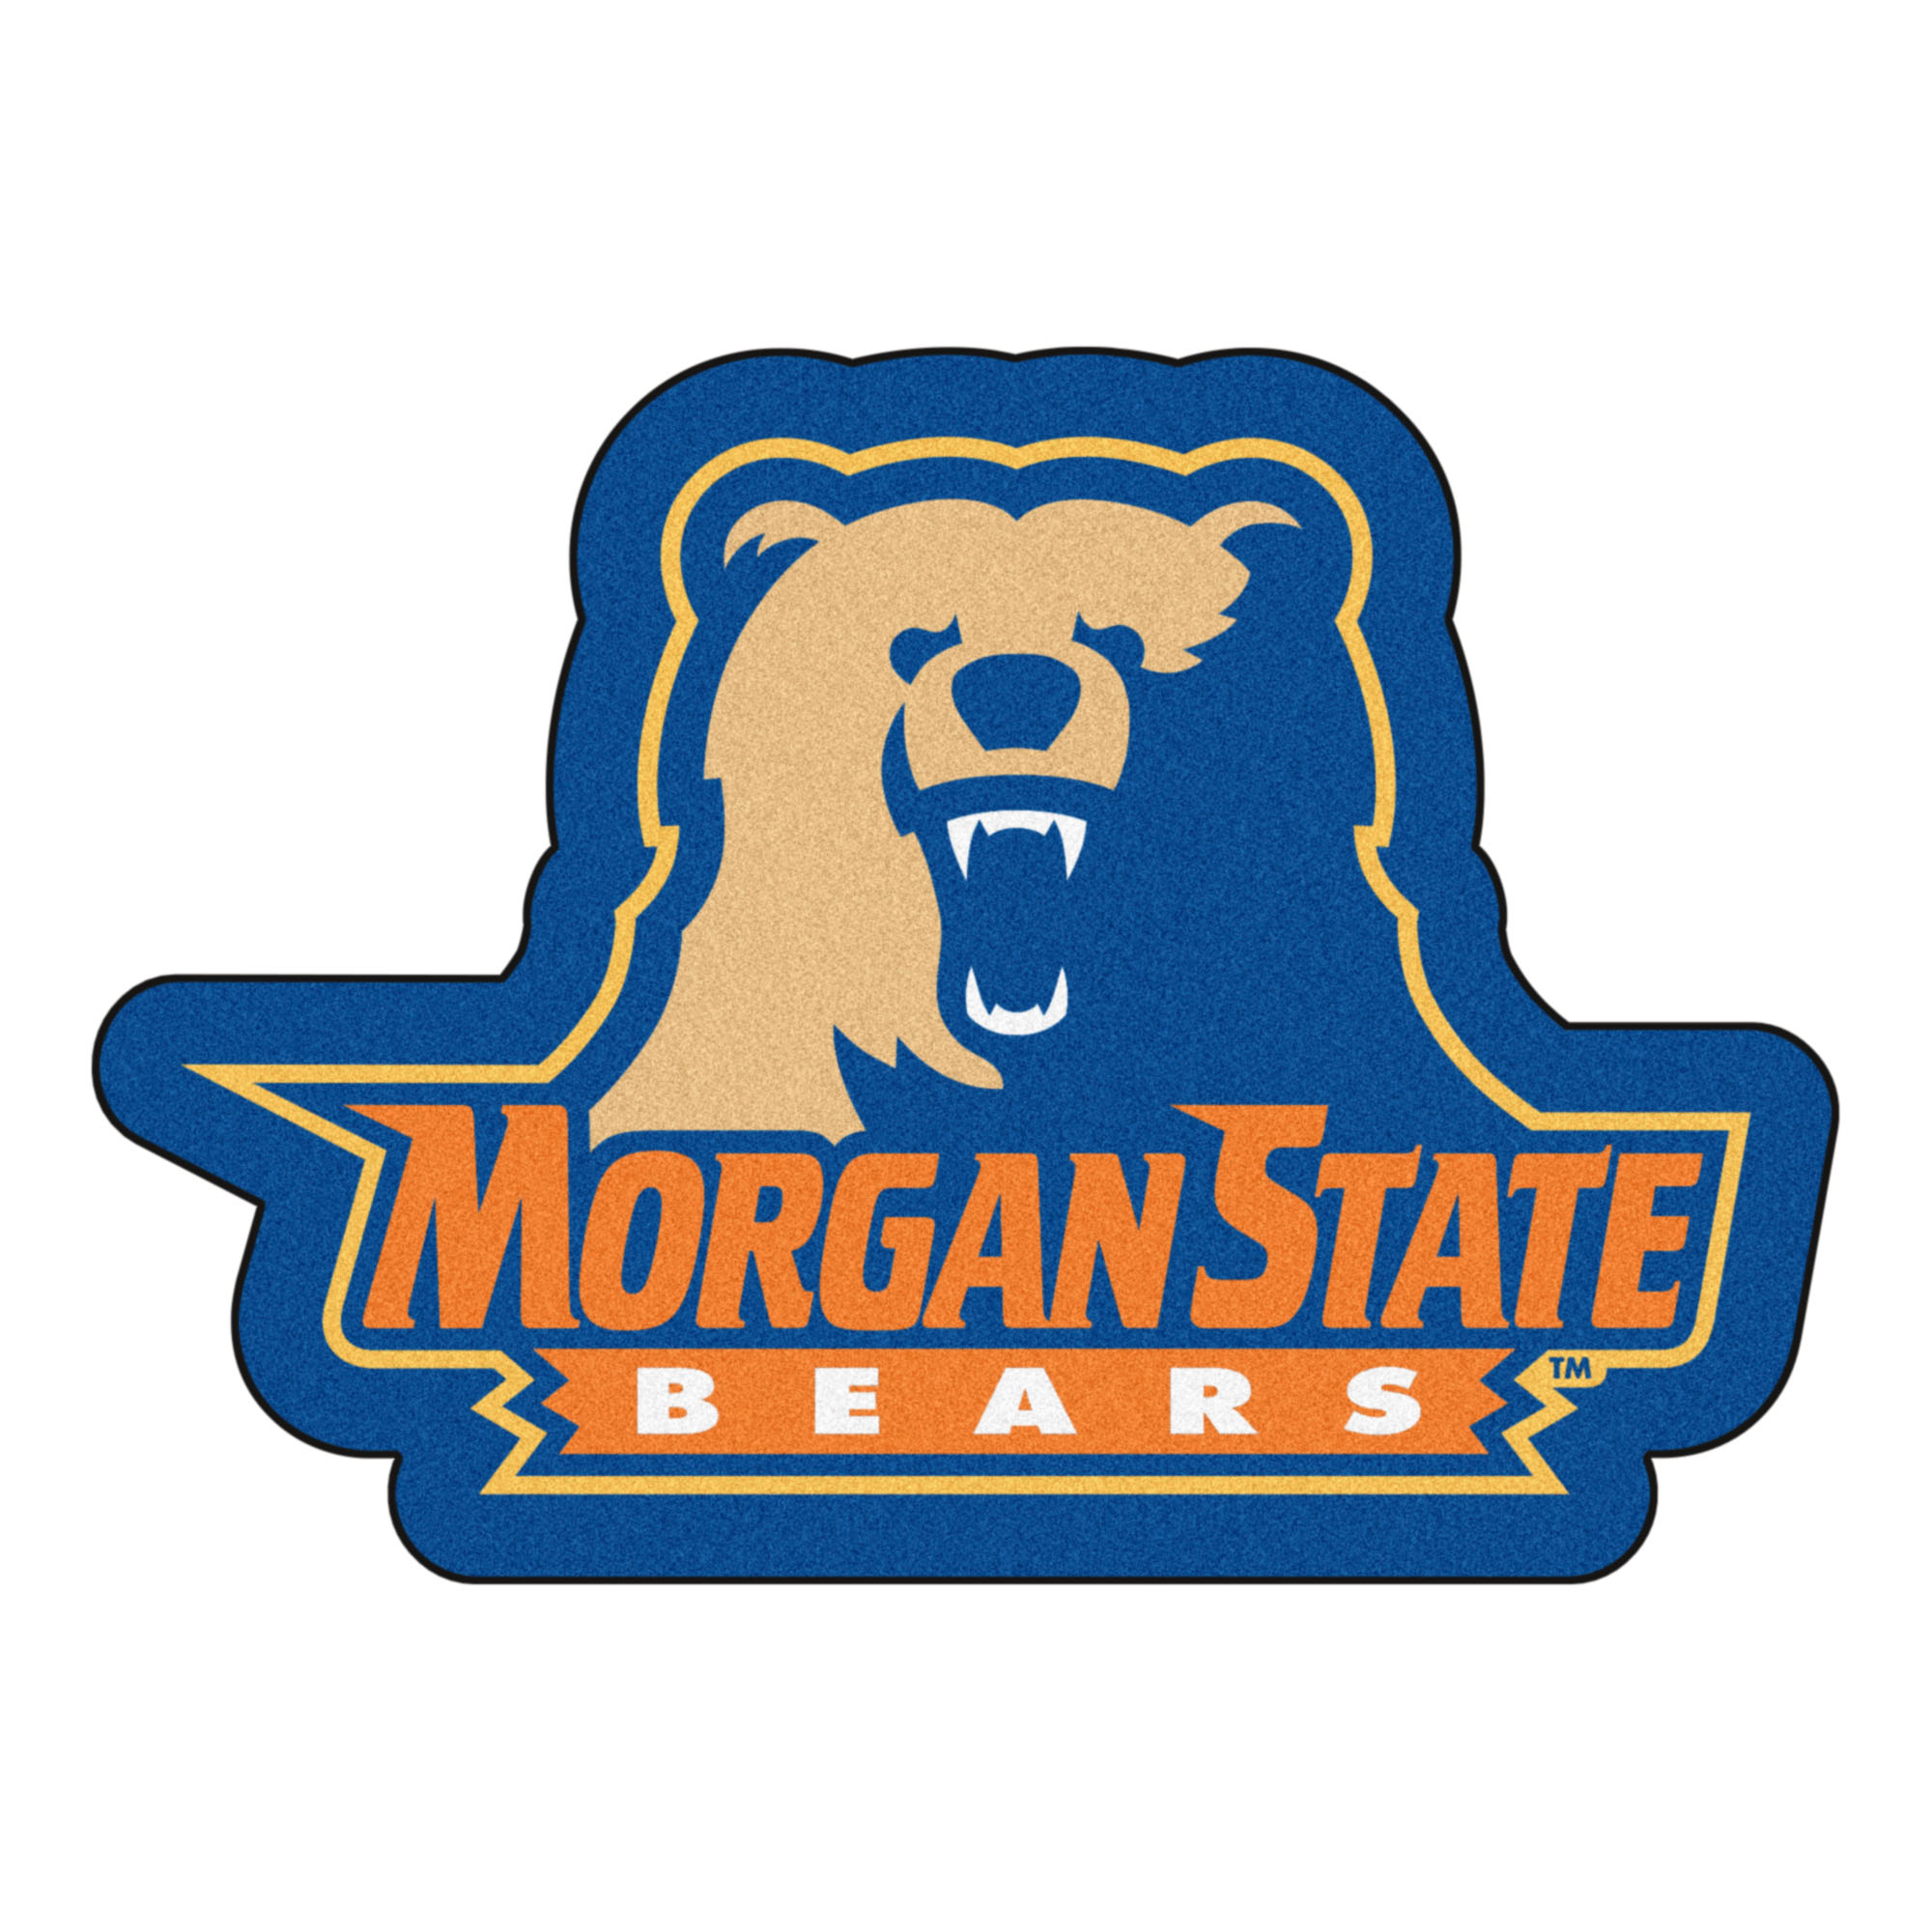 Morgan State University Bears Mascot Area Rug Nylon